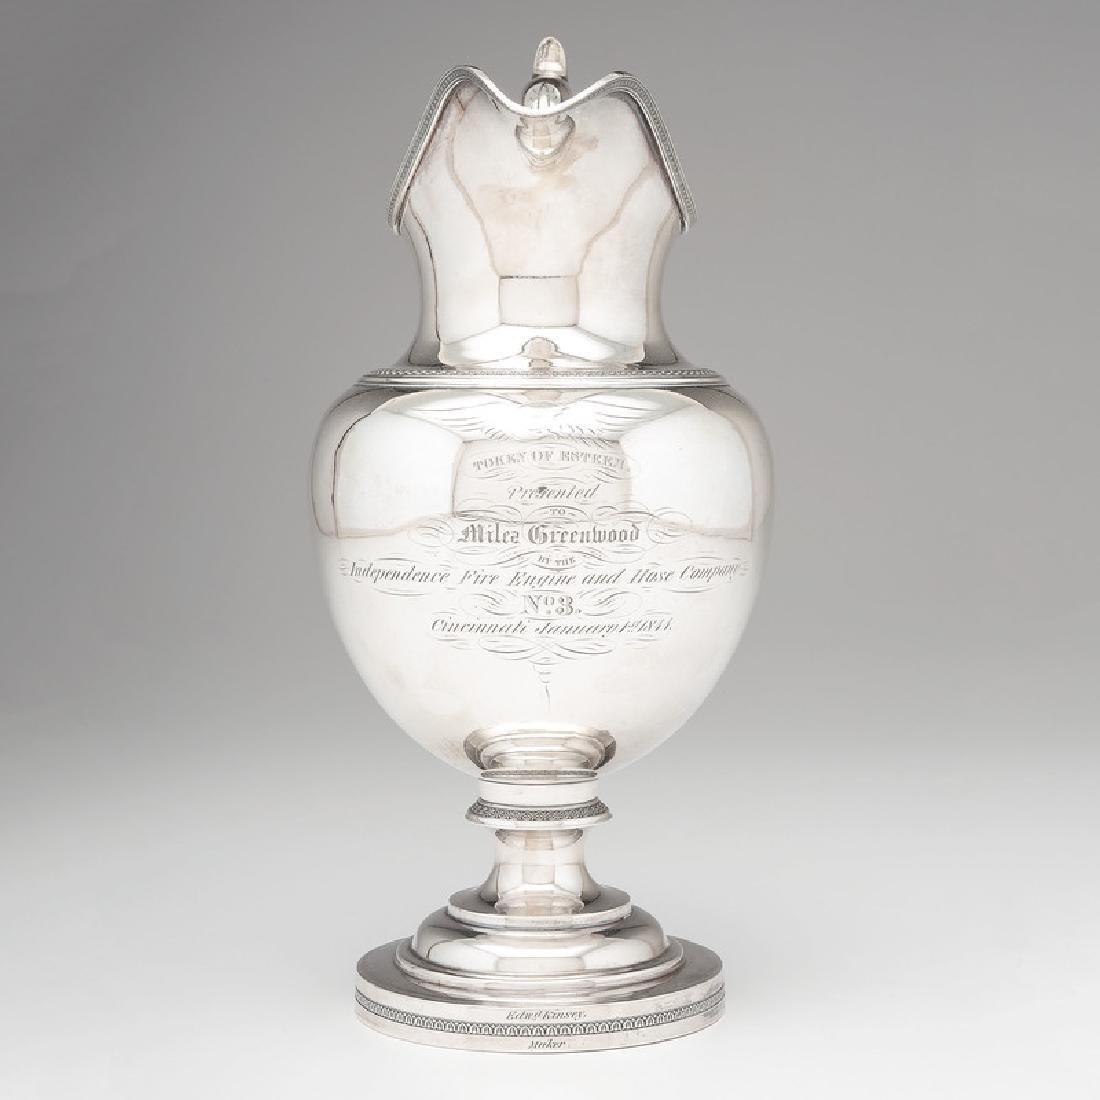 Edward Kinsey Coin Silver Pitcher, Presented to Miles